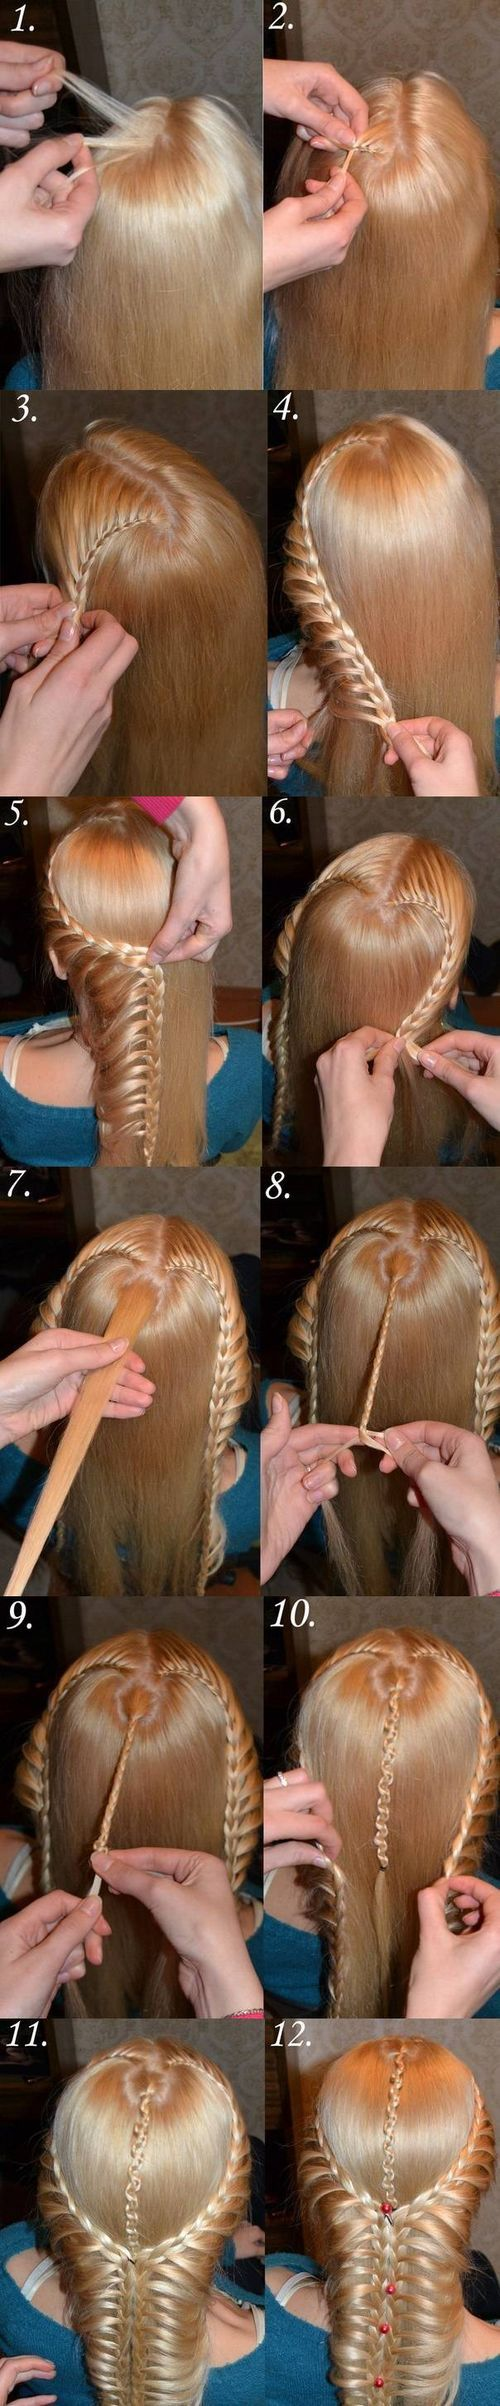 diy heart shaped french braids